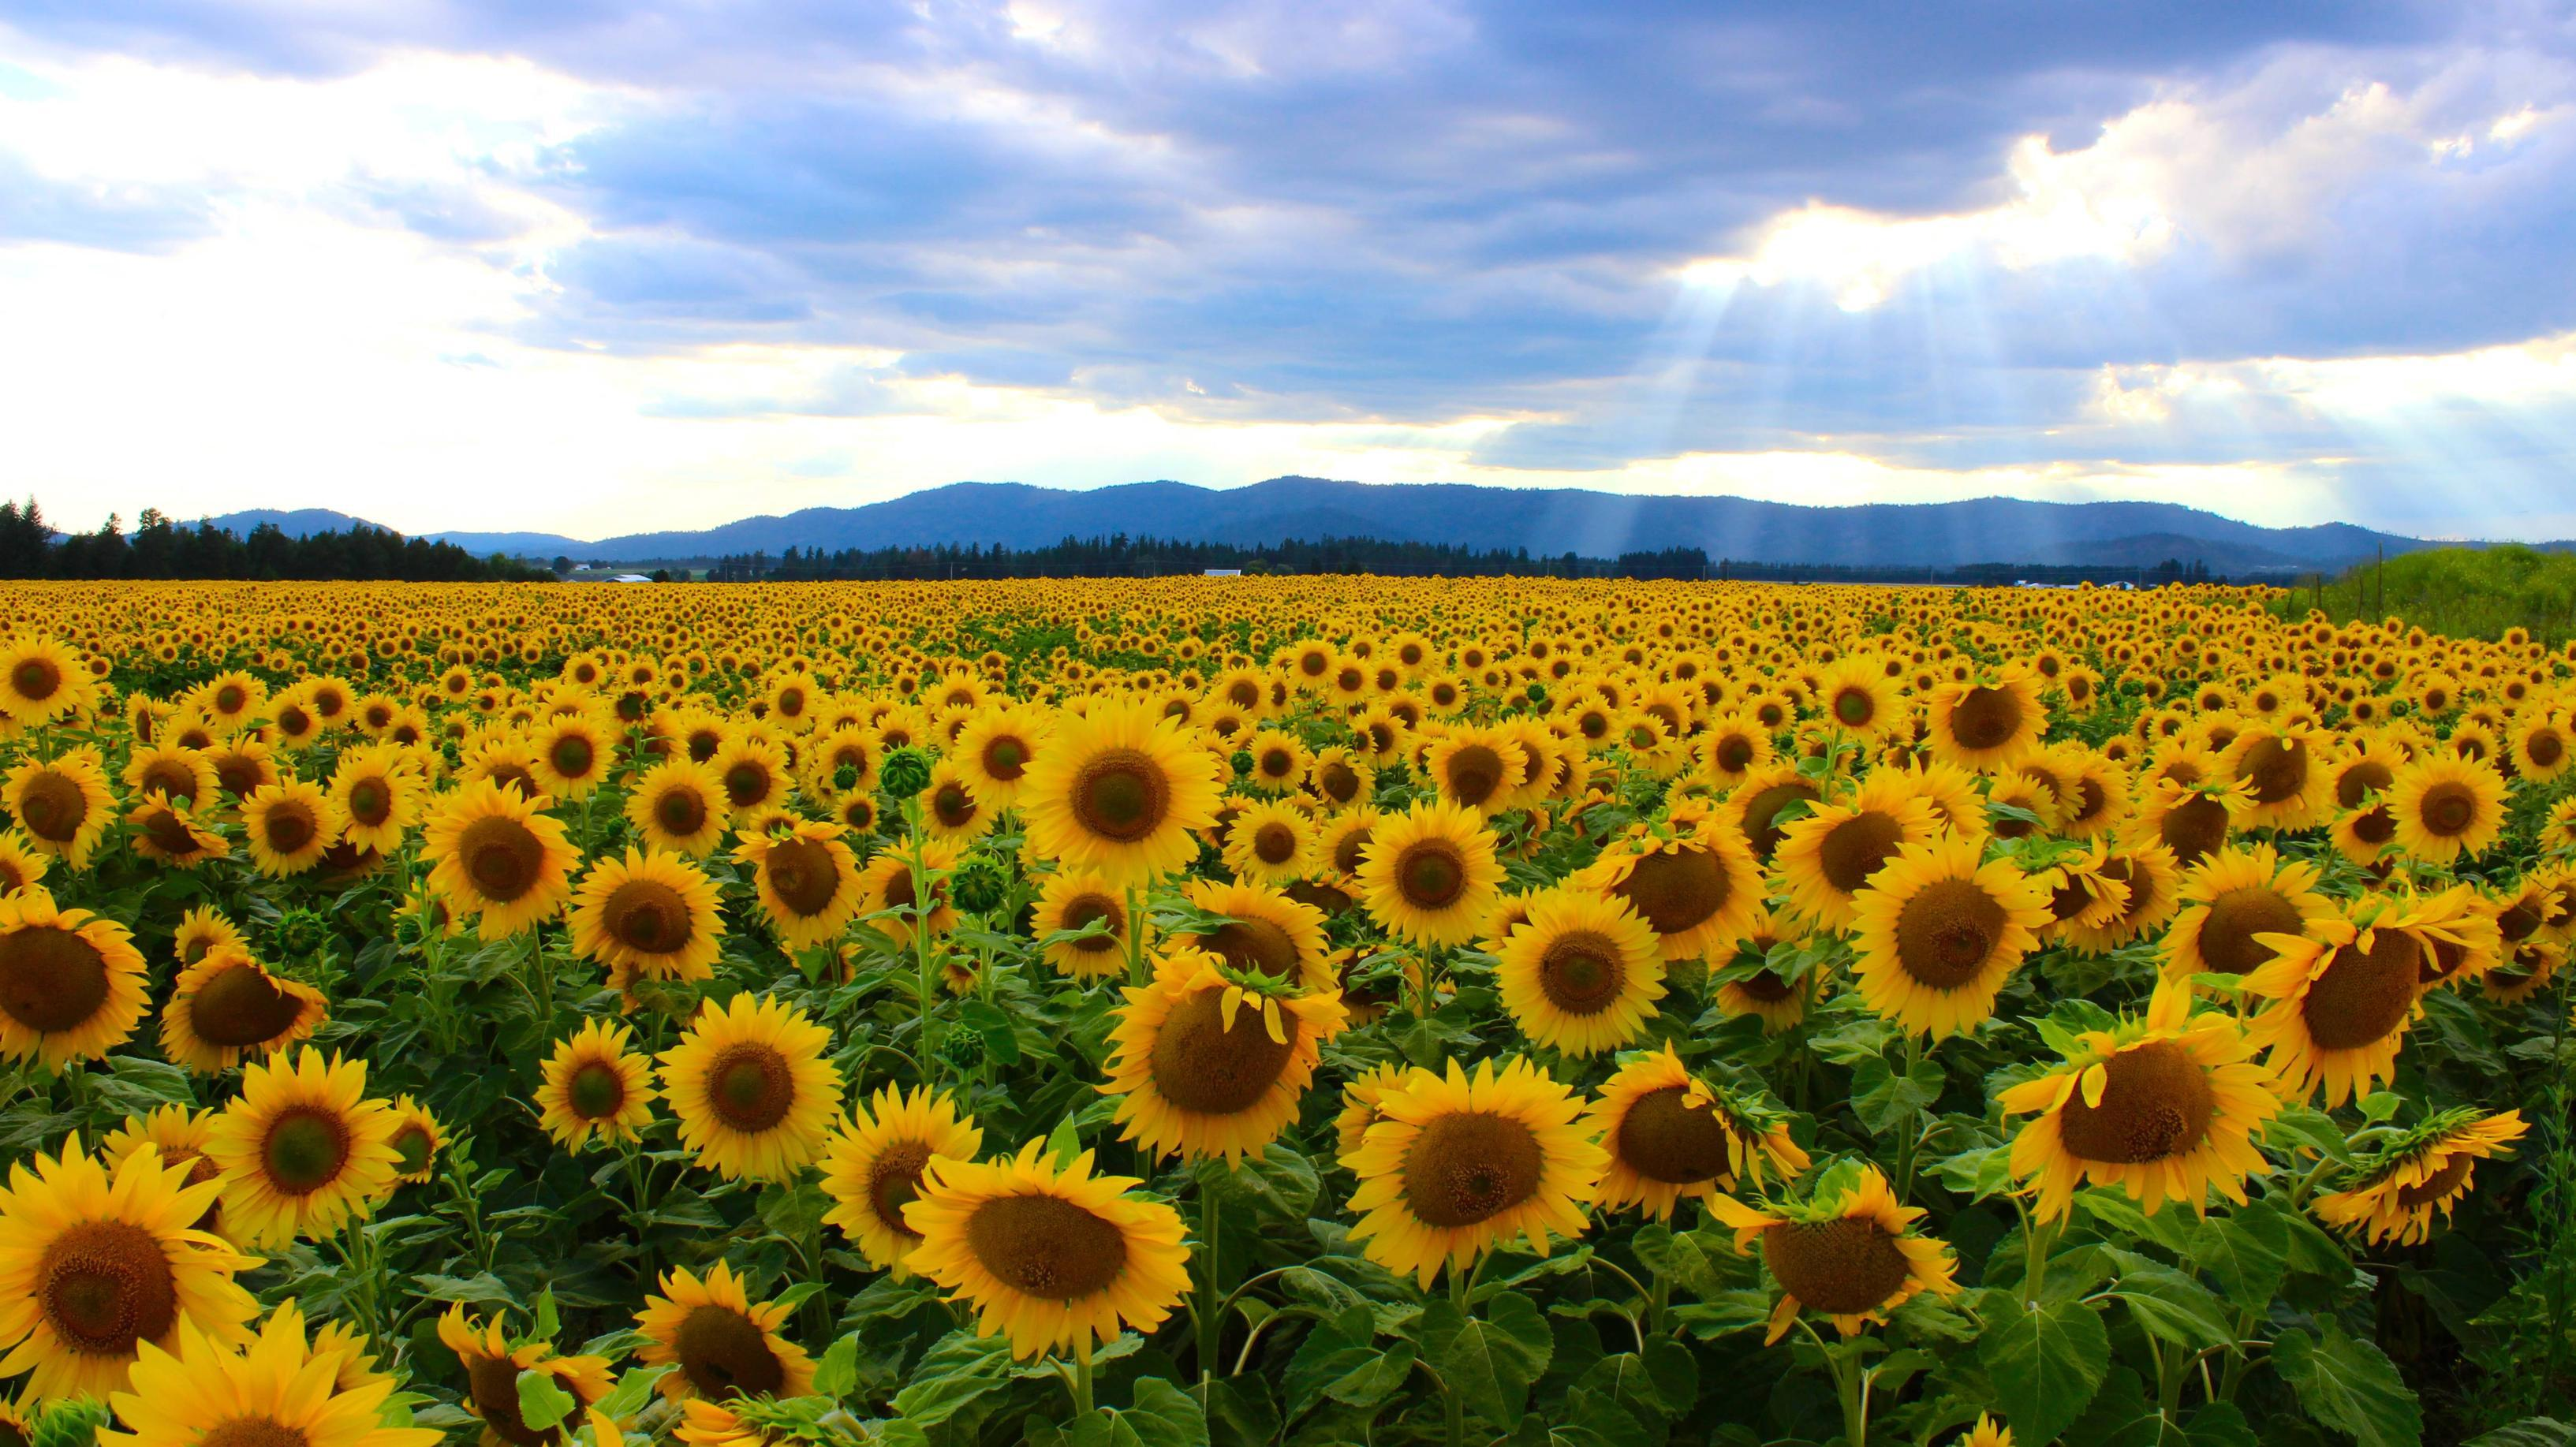 Incredible Image of an Amazing Sunflower Field in The Netherlands ...